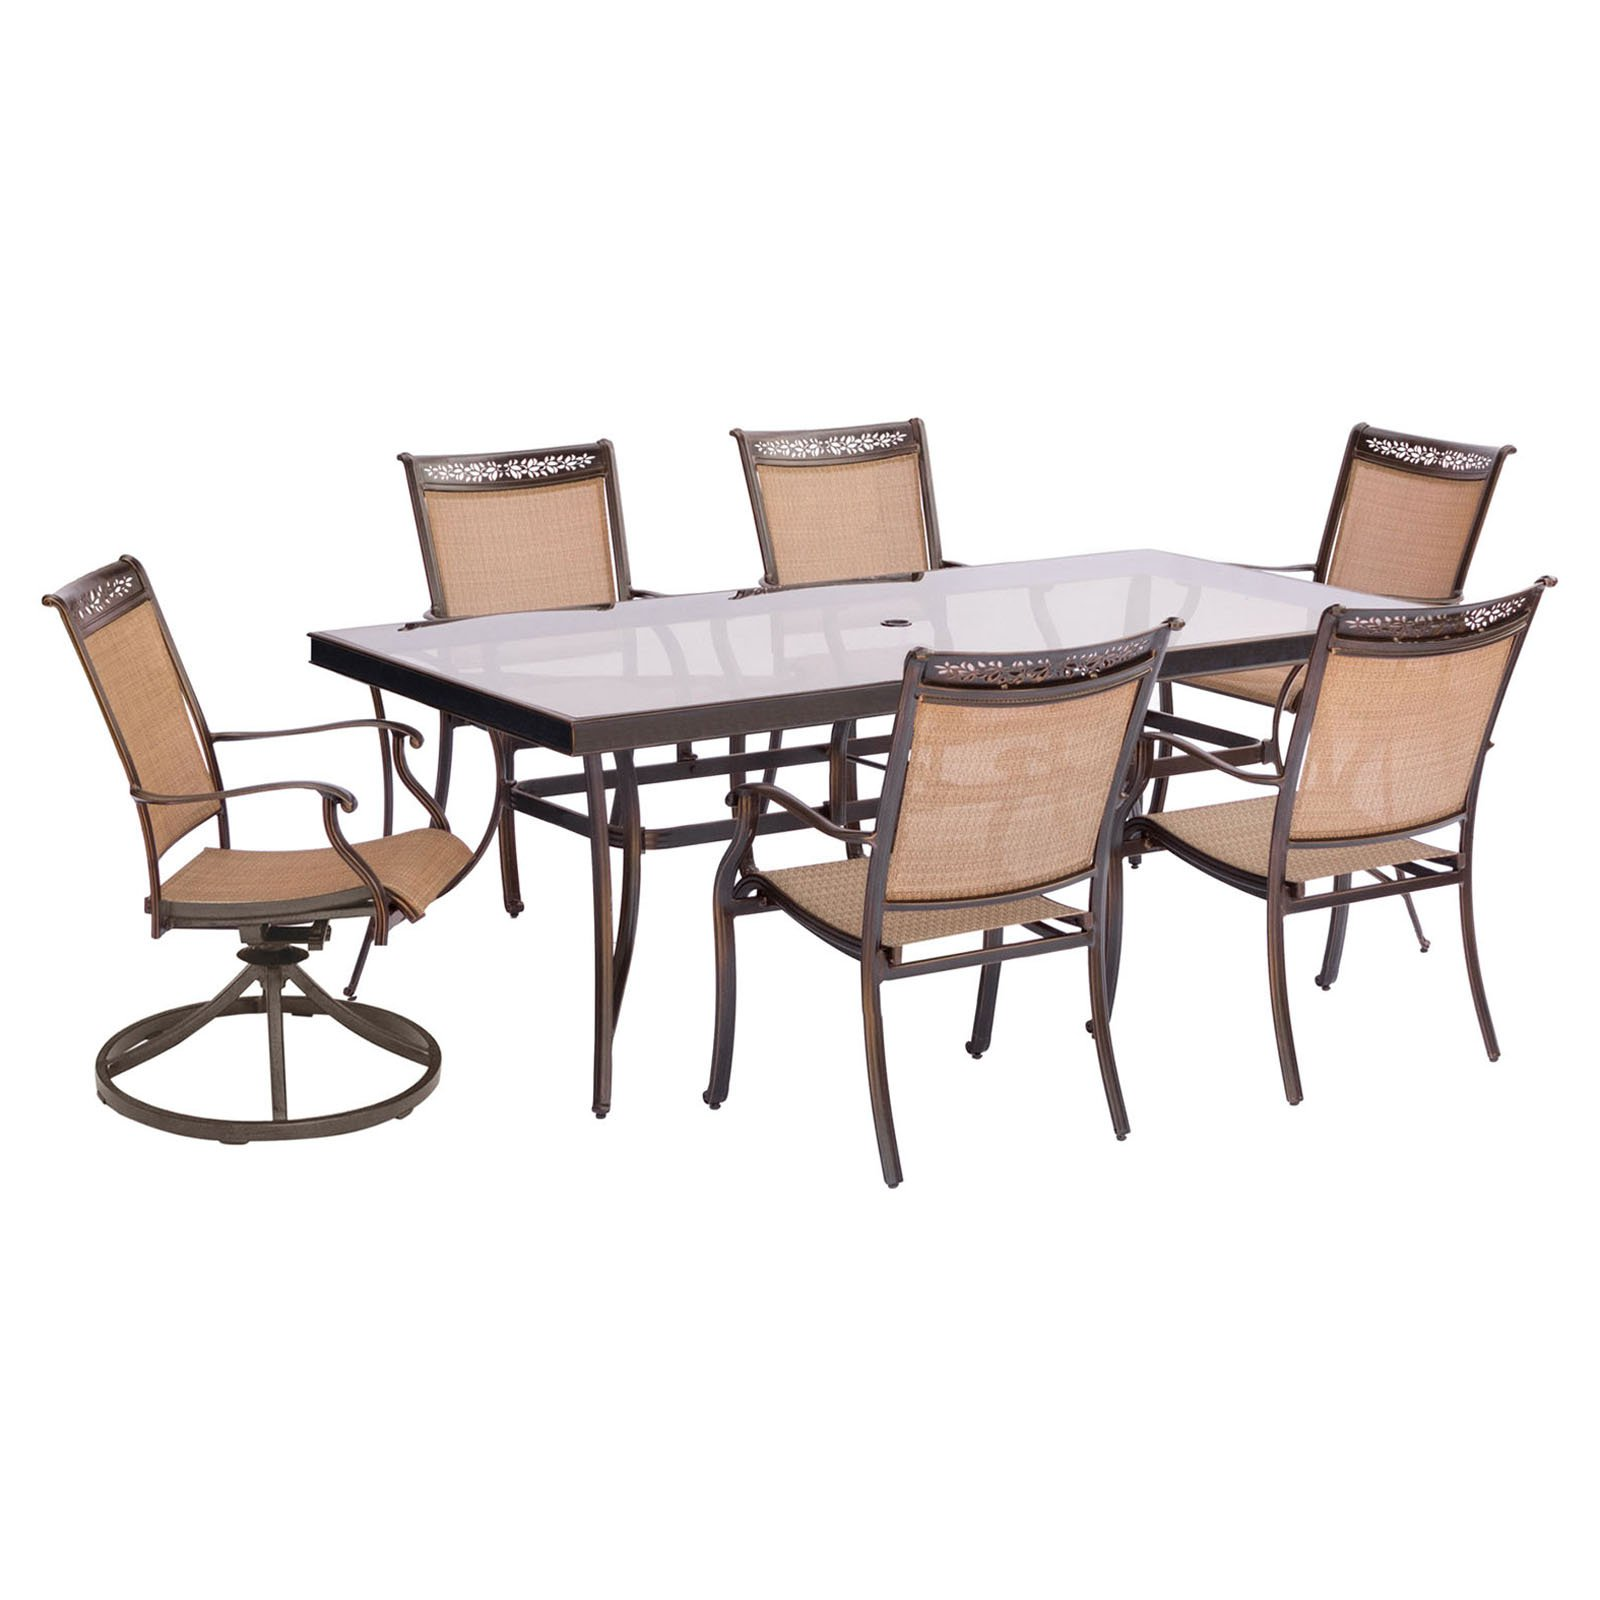 Hanover Fontana 7-Piece Outdoor Dining Set with 4 Stationary Chairs, 2 Swivel Rockers and Glass-Top Table